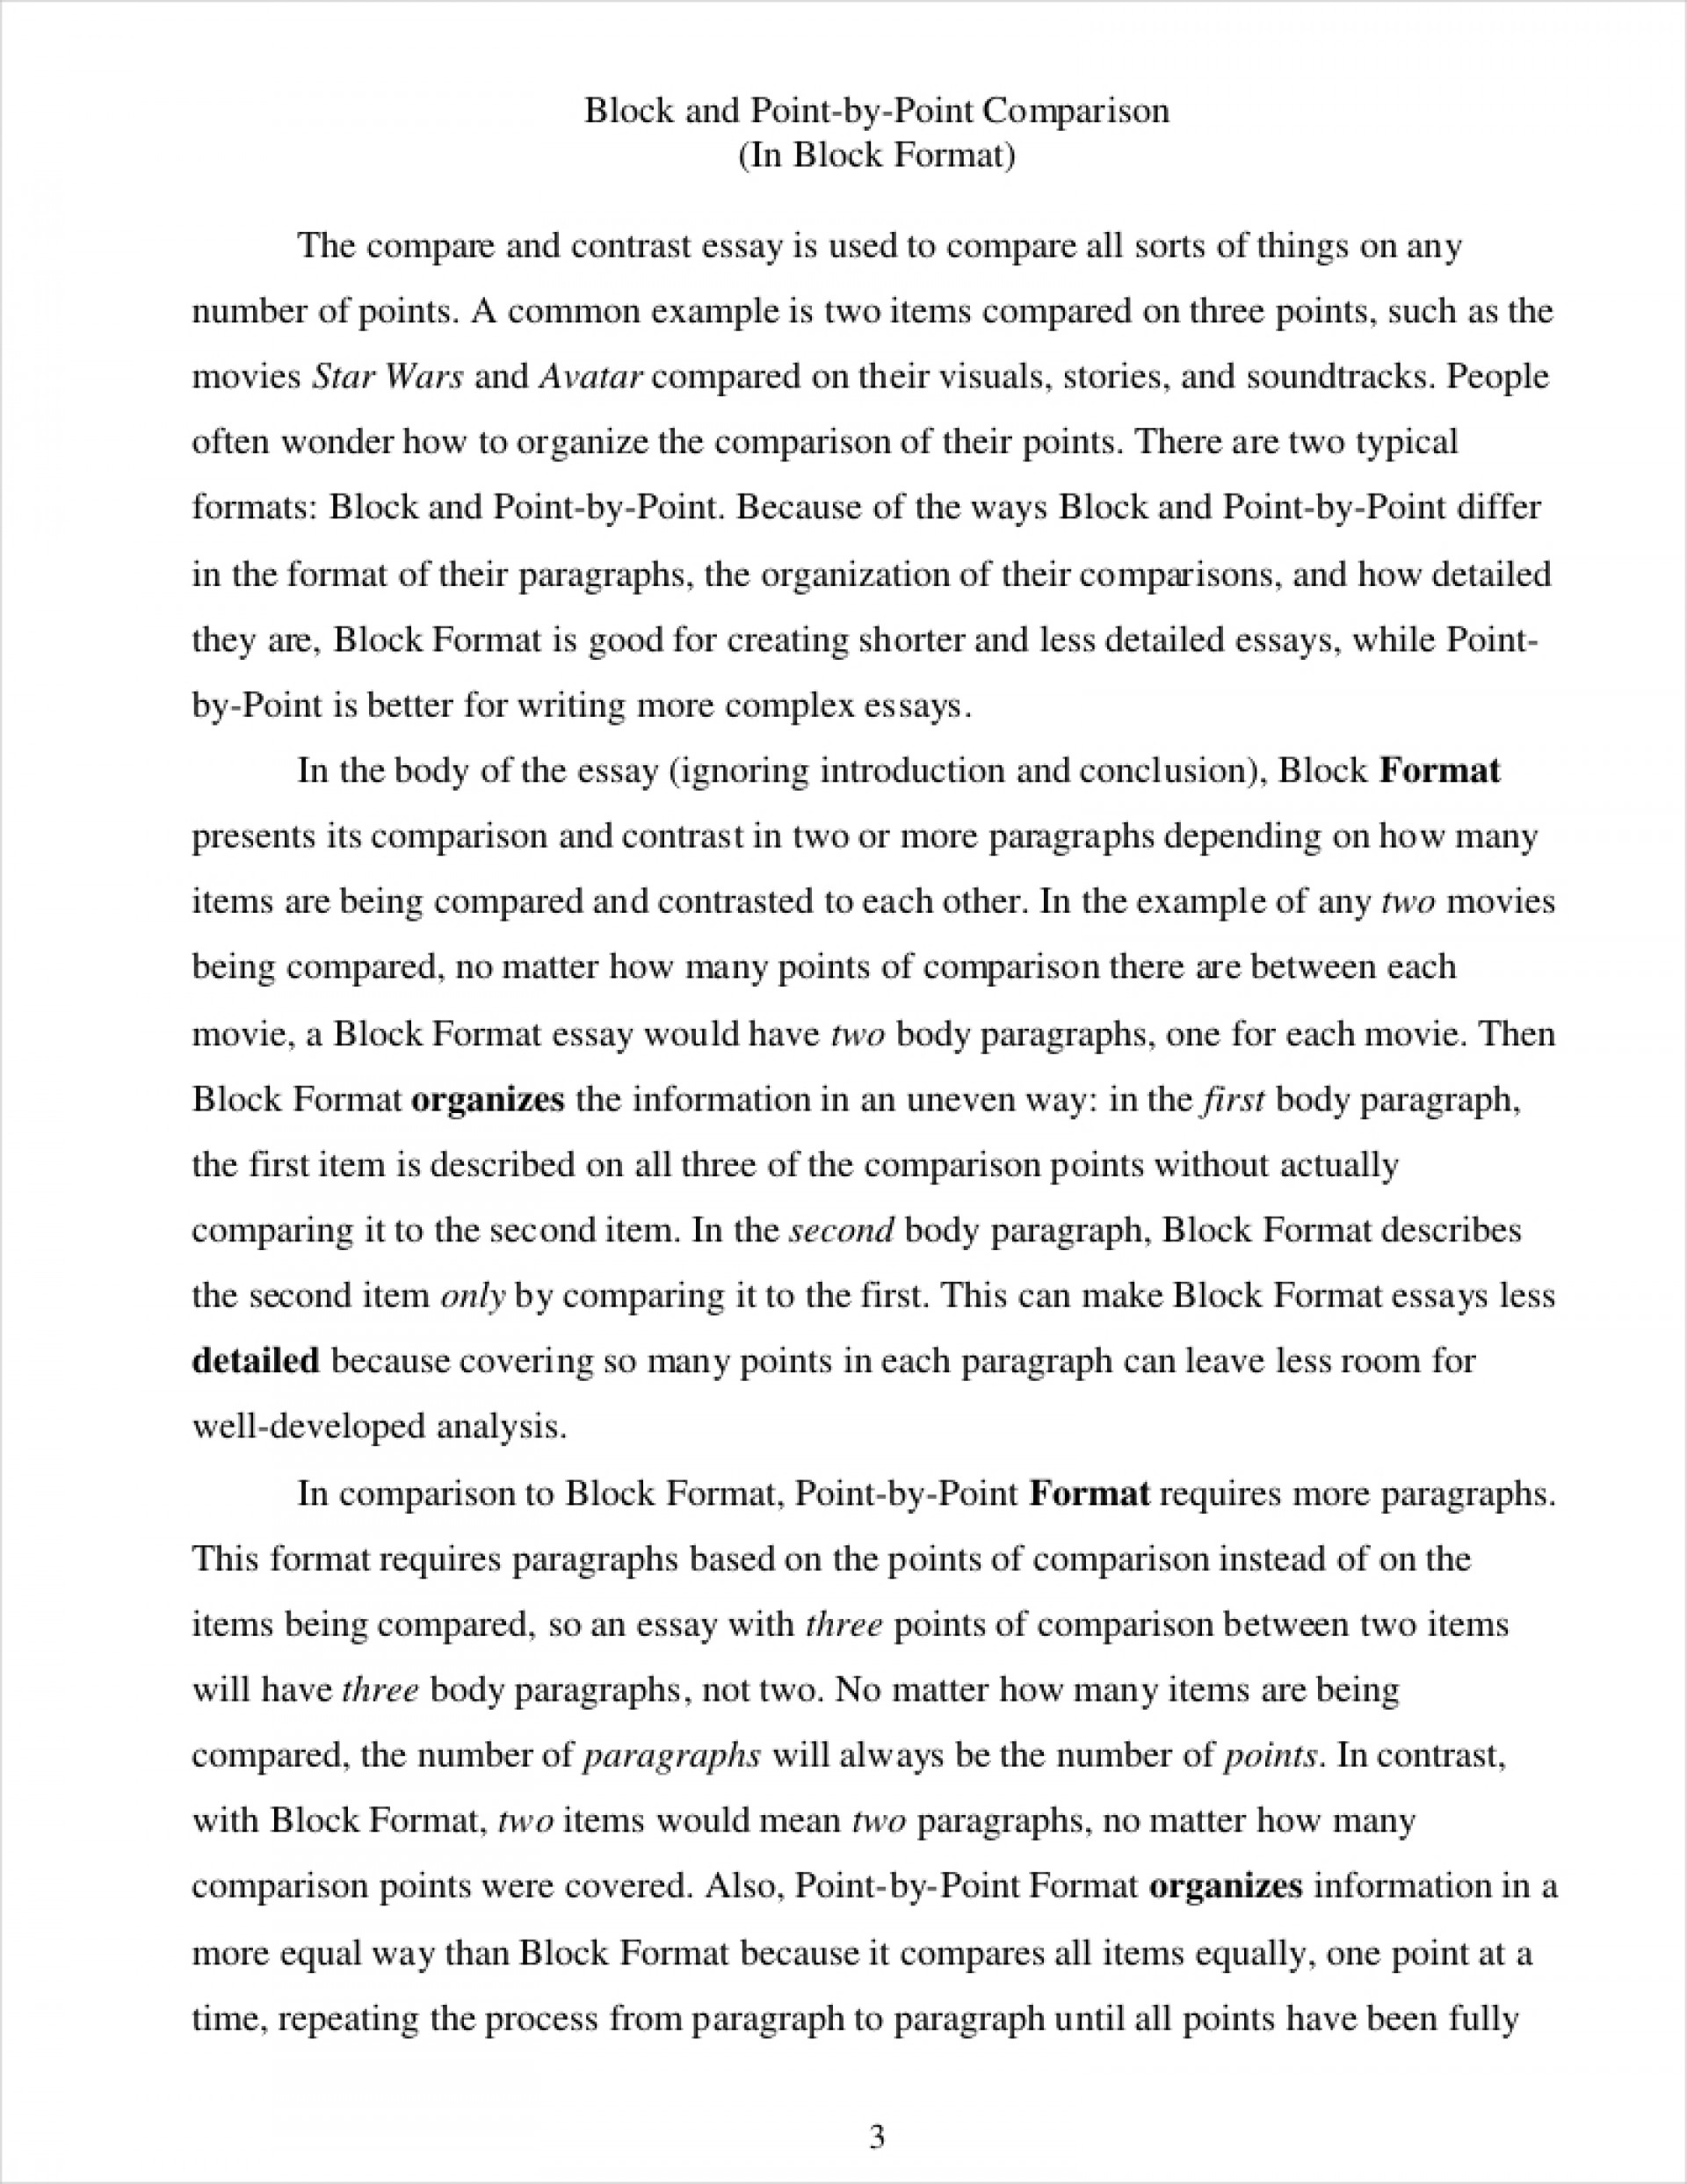 006 Essay Pdf Example Comparative Samples Free Format Download Point By Exa Sample Unbelievable Gujarati Argumentative Terrorism 1920